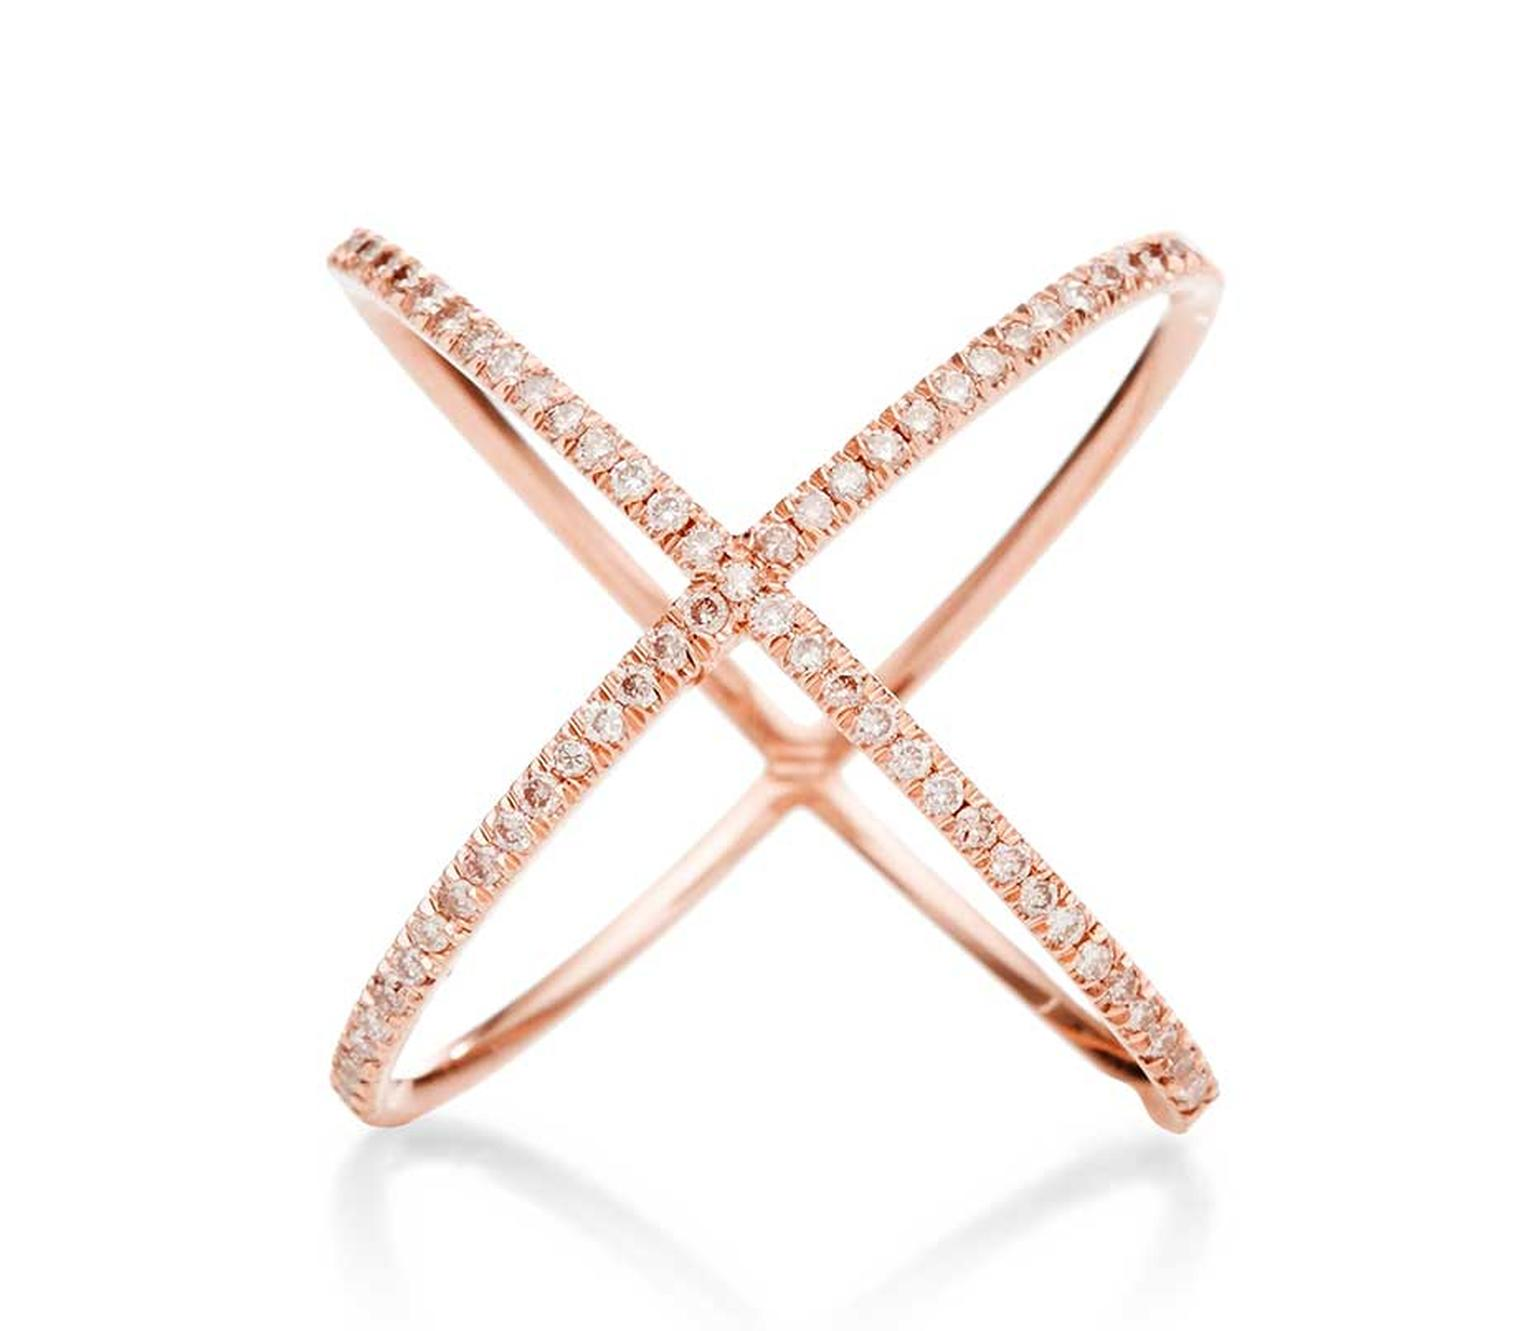 "Eva Fehren ""X"" ring in rose gold with fancy pink pavé-set diamonds. Exclusive to Moda Operandi ($8,695)."